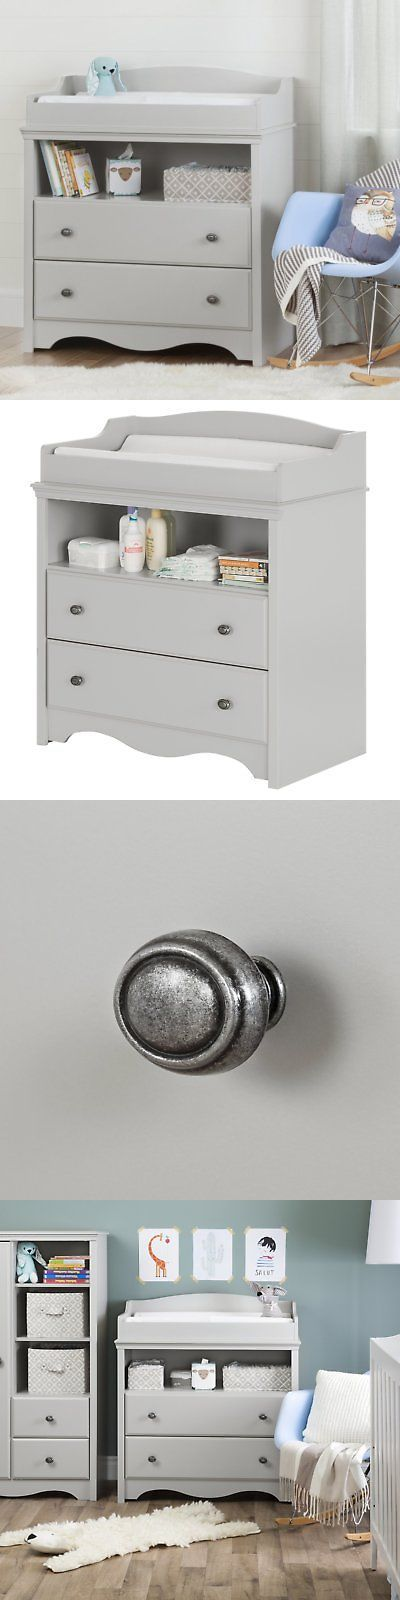 Changing Tables 20424: South Shore Angel Changing Table With Drawers, Soft  Gray  U003e